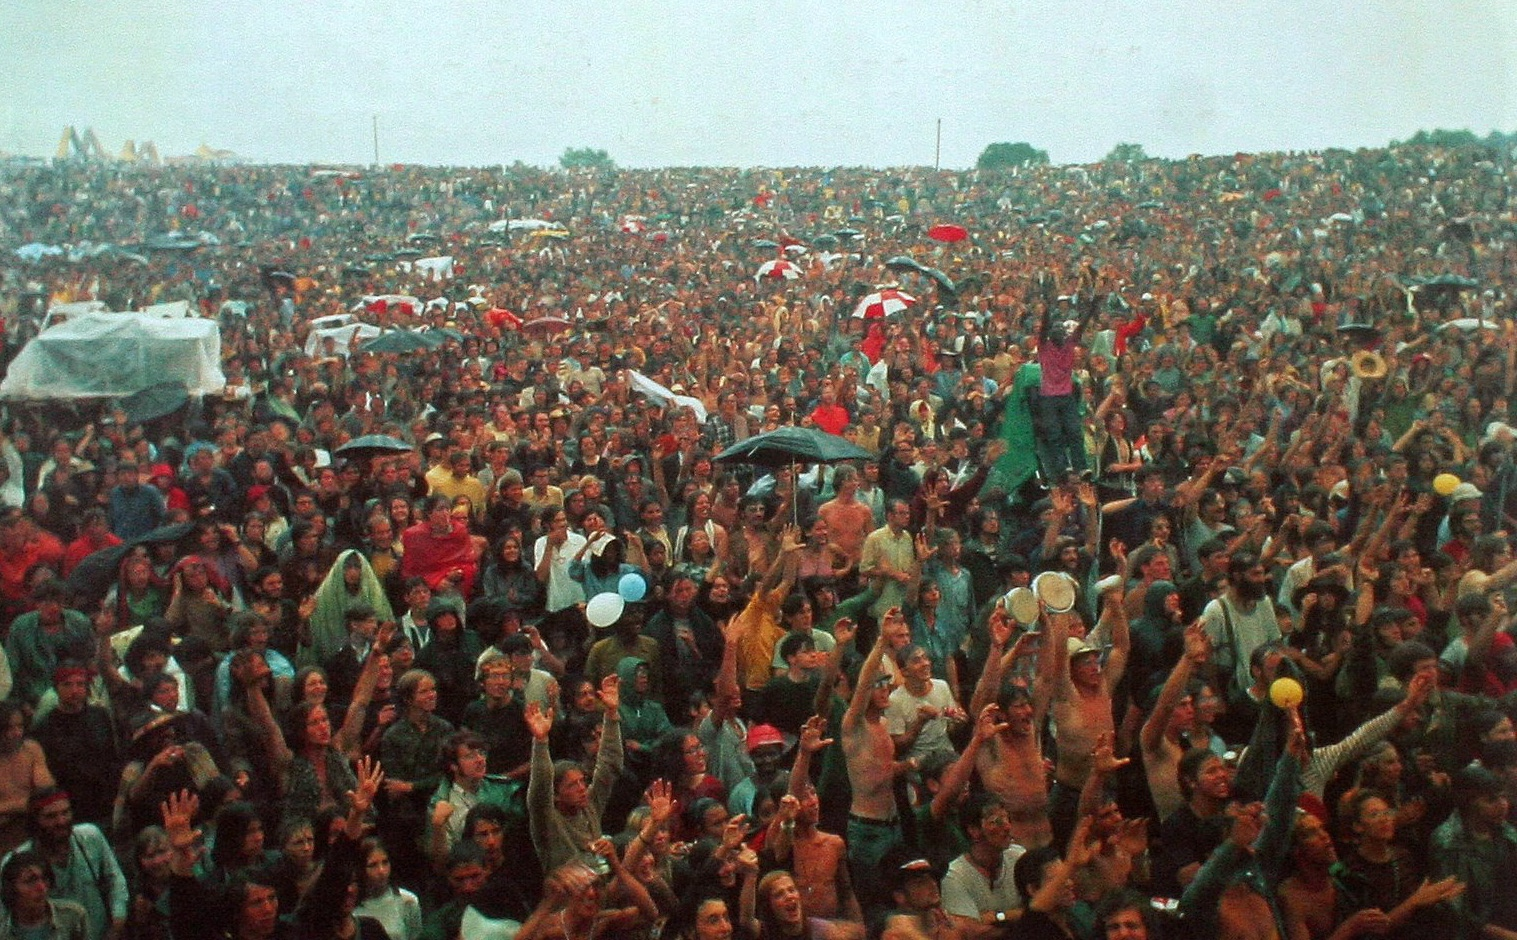 woodstock was epic